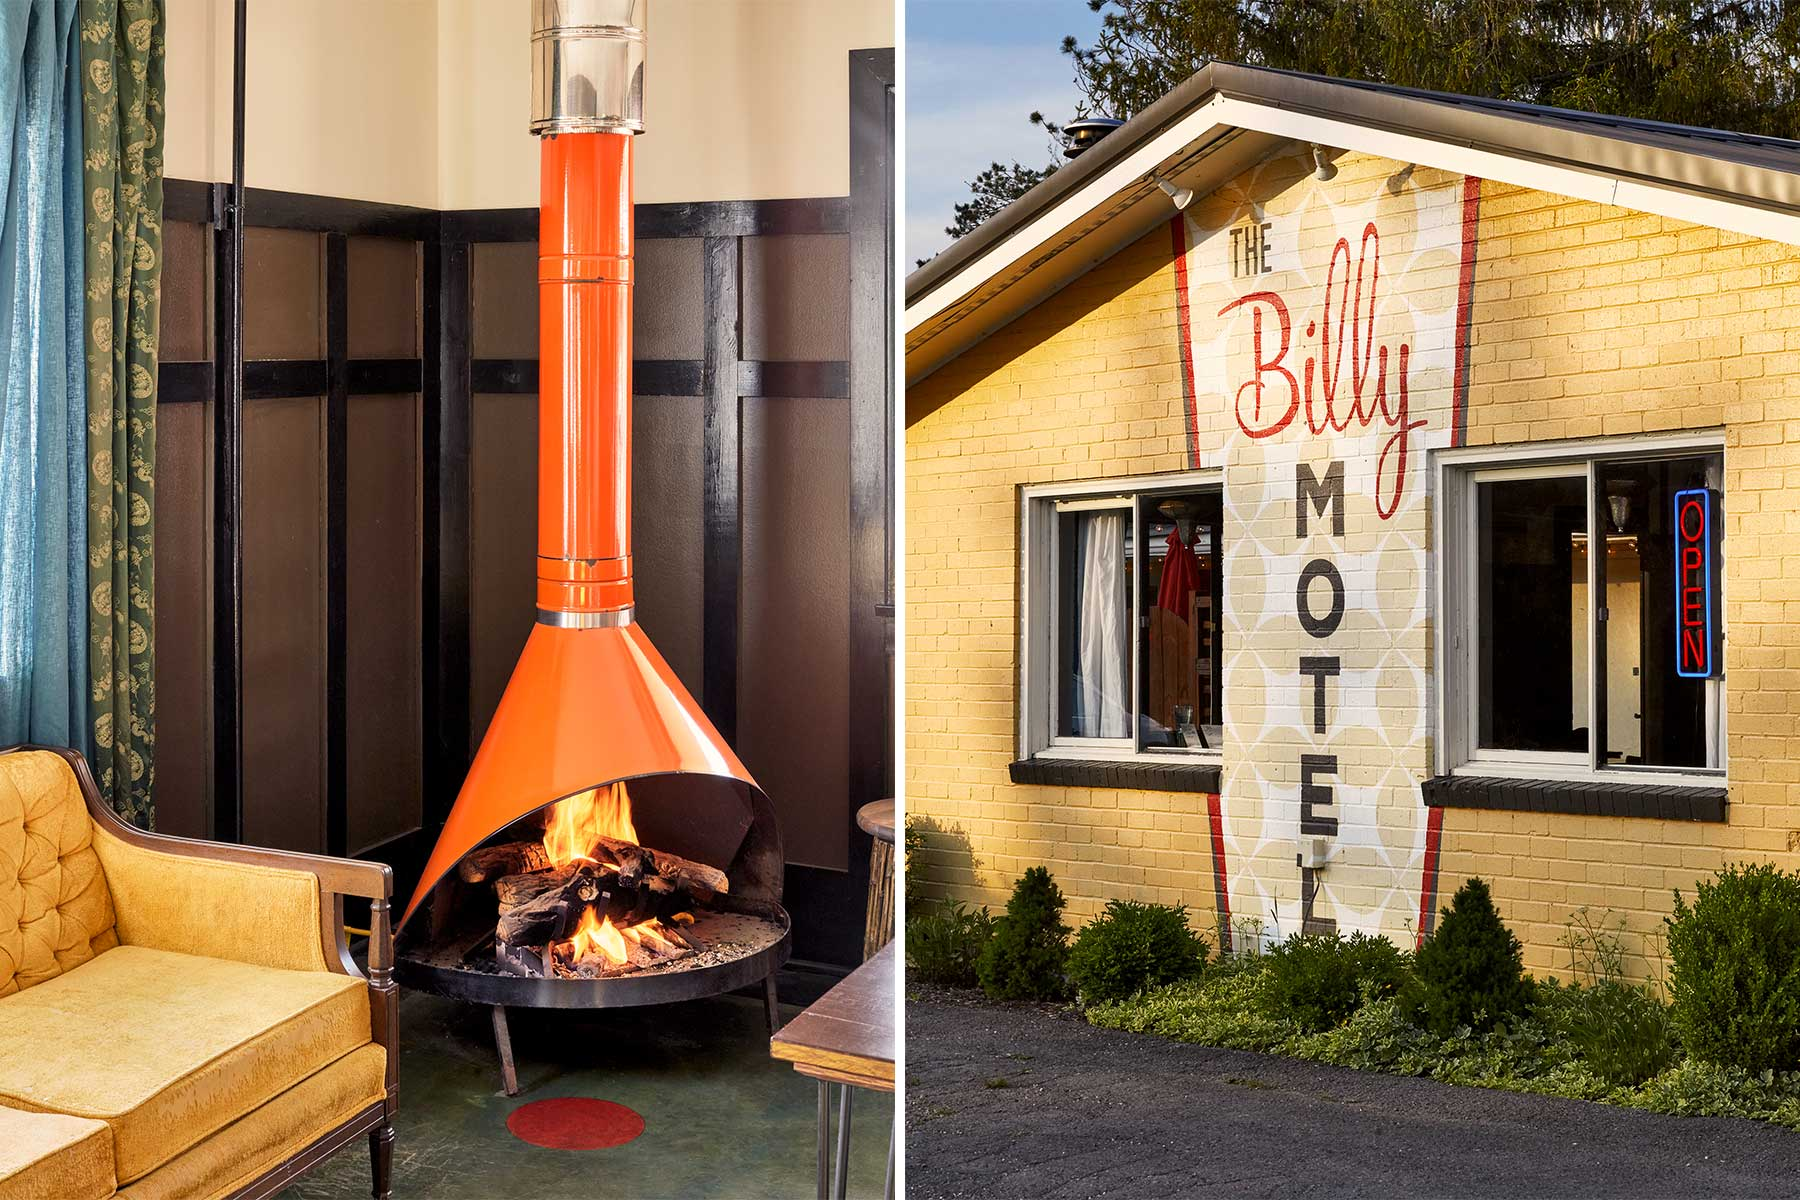 Two photos show the retro decor of The Billy Motel, in West Virginia